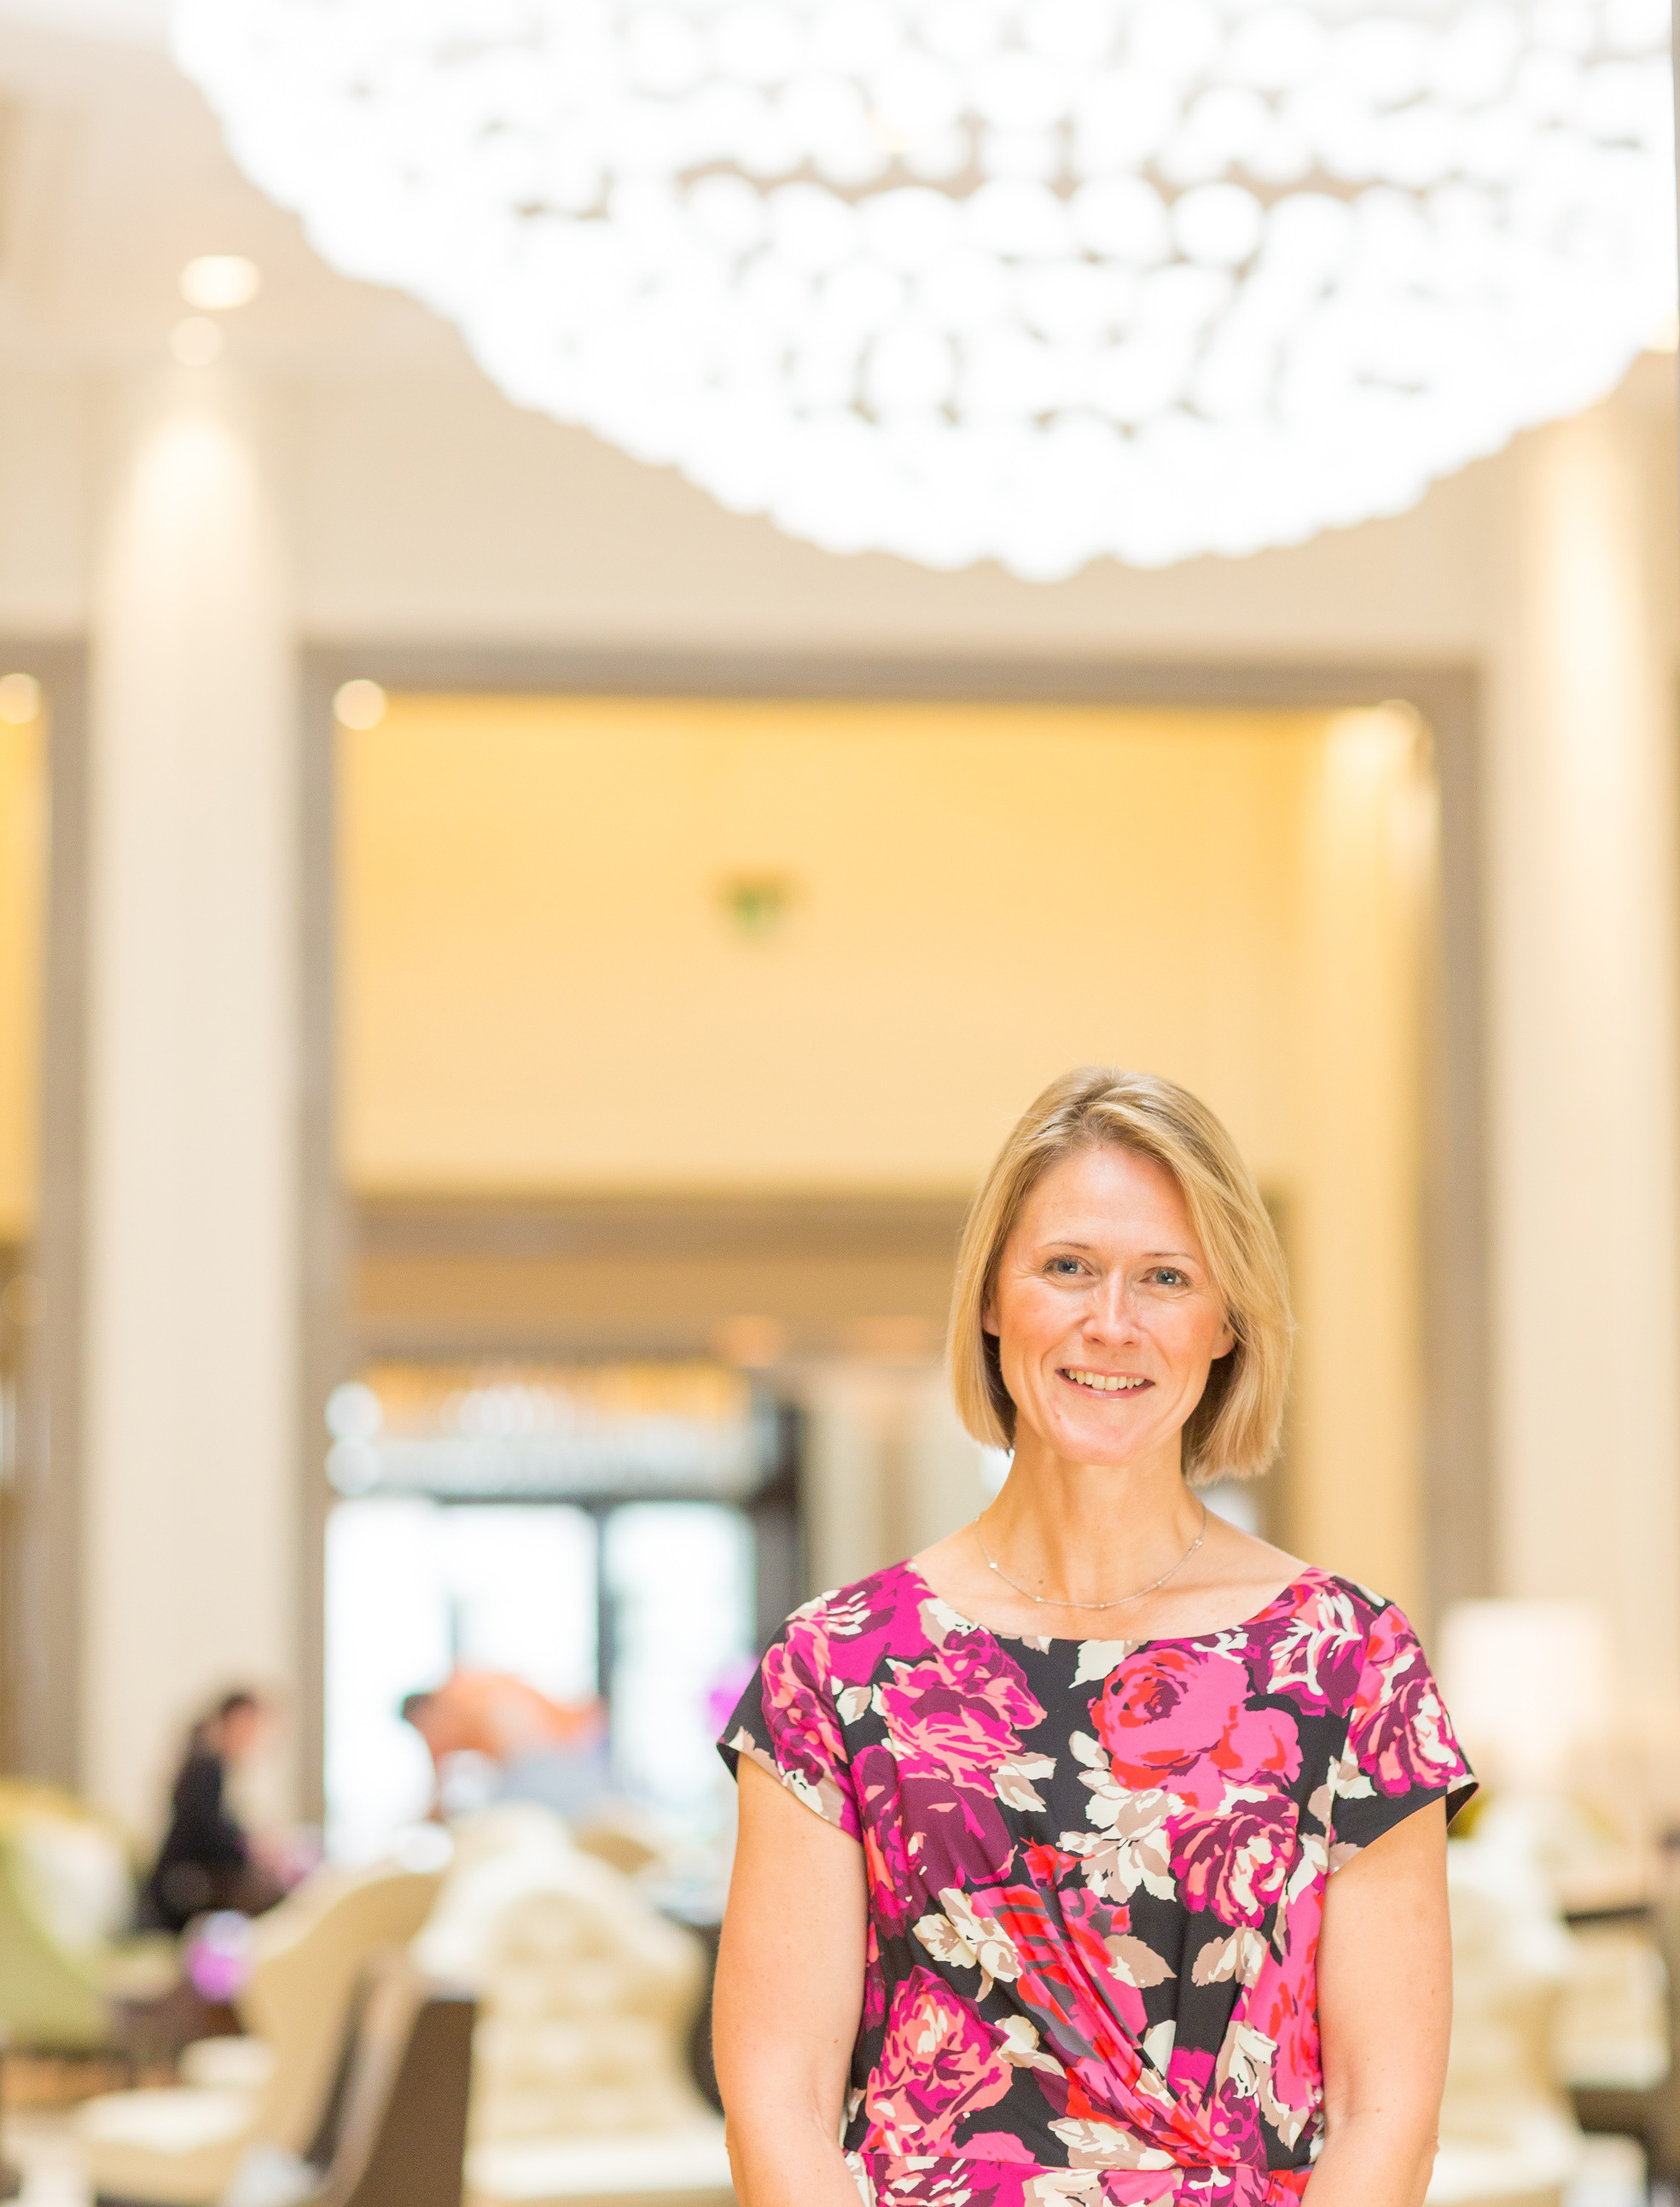 Corinthia Hotels Oints Pr Travel And Media Specialist Fiona Harris To Head Its International Public Relations Business Wire